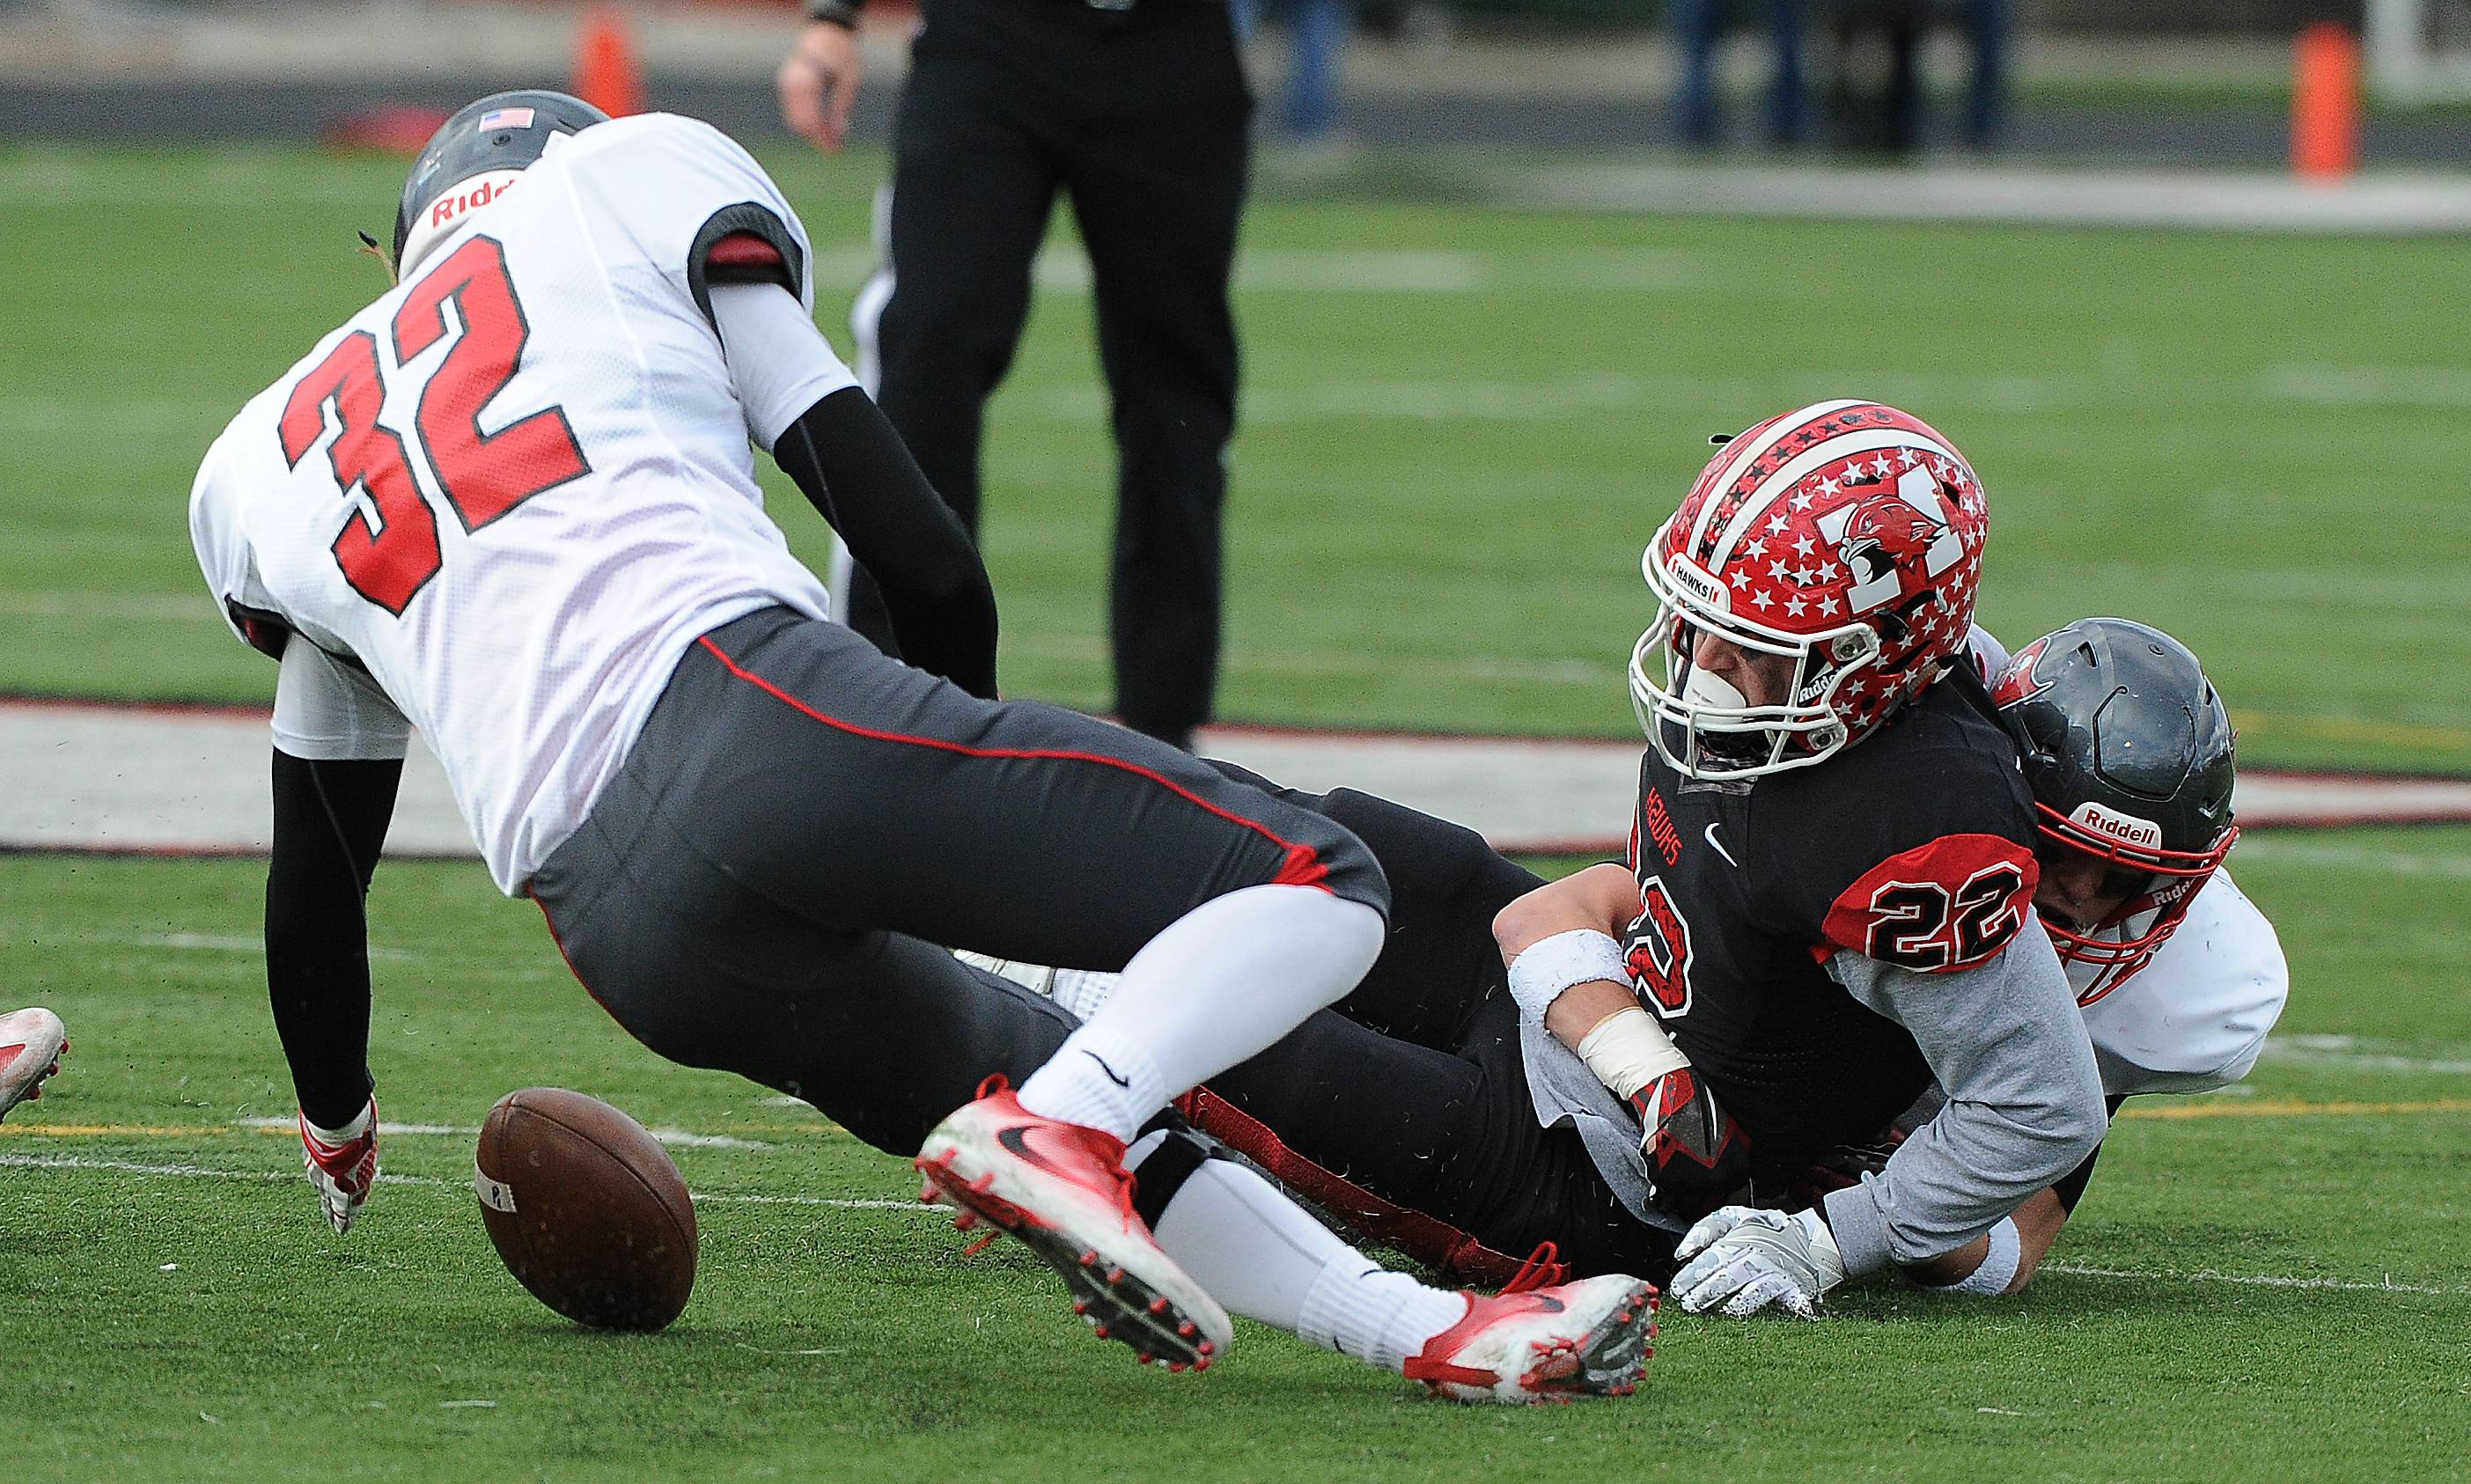 Palatine's Scott Elter can't scoop up a botched punt return fumble by Maine South's Paul Sasso in the first quarter. Palatine's football season ended with a loss to Maine South 28-14 in the Class 8A semifinals in Park Ridge.